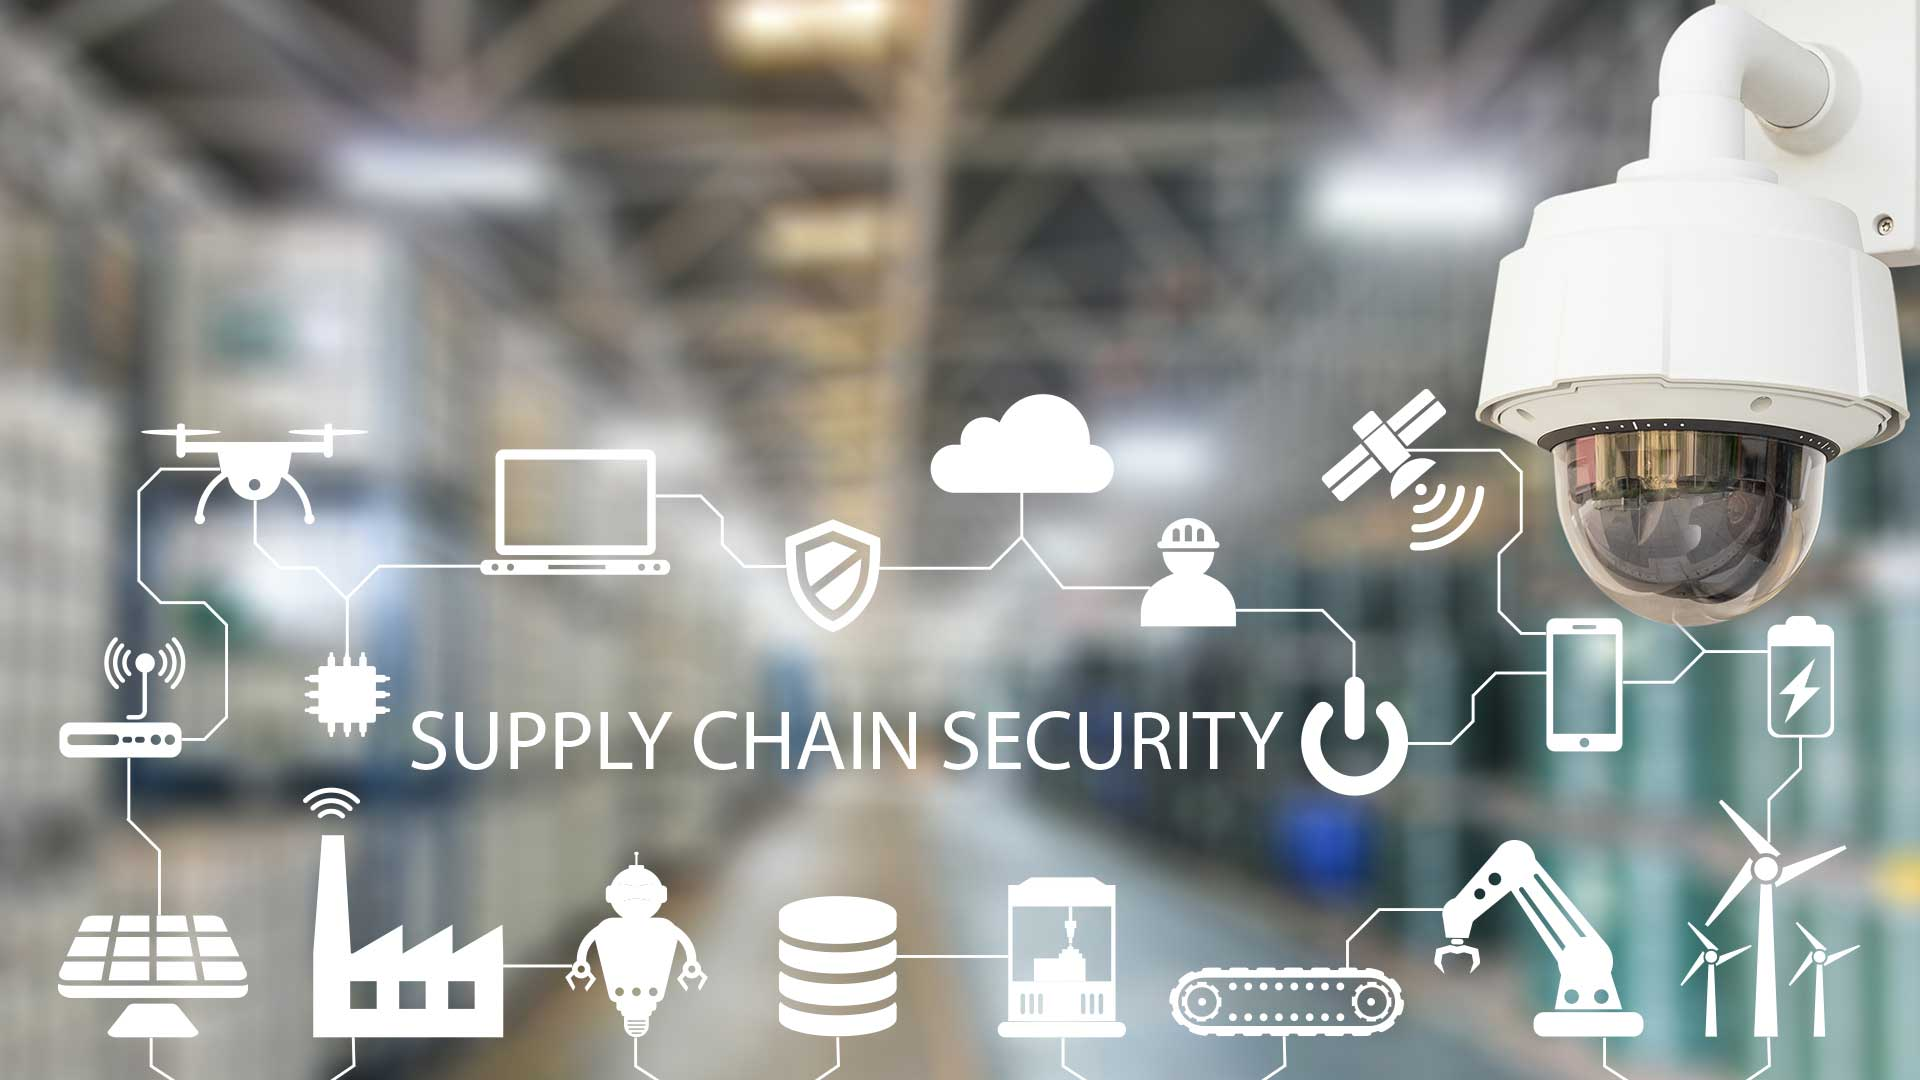 Supply Chain Security - cybersecurity and risk management